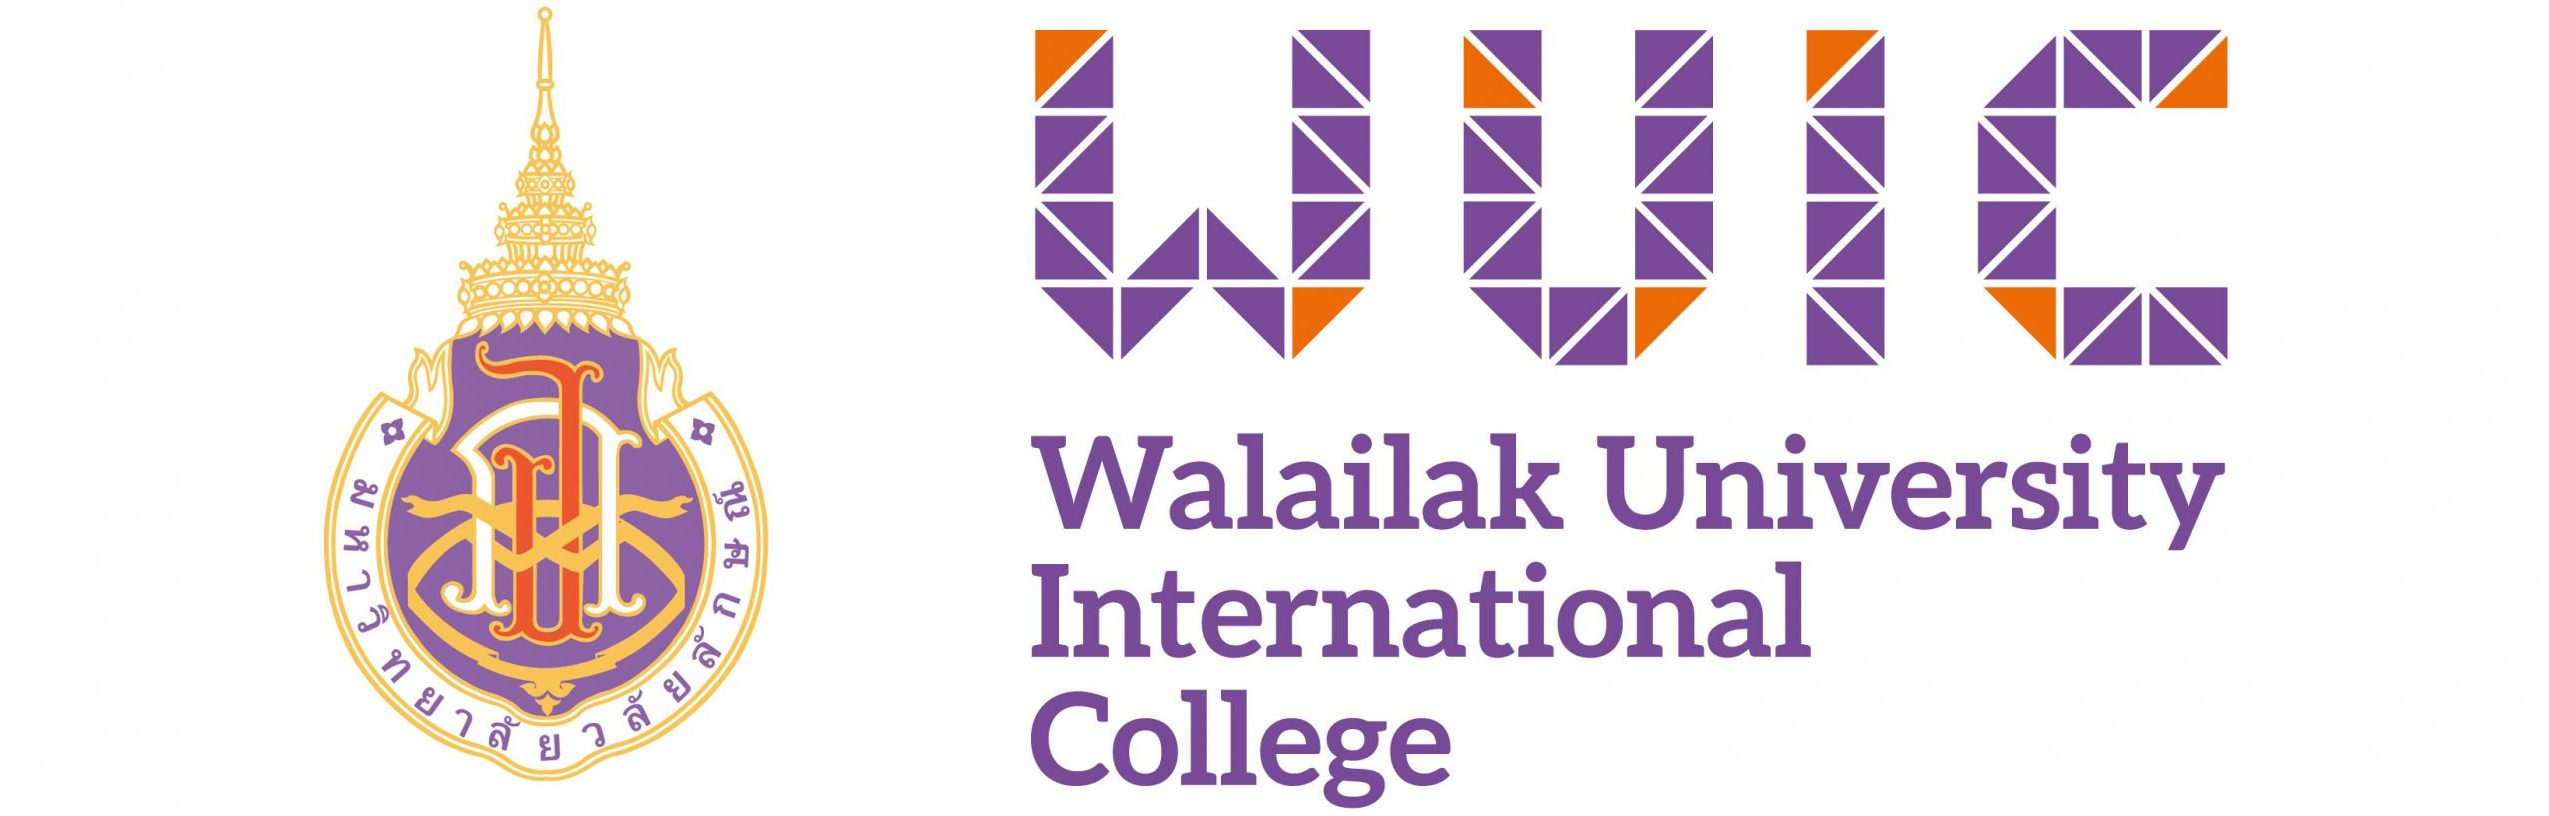 Walailak University International College